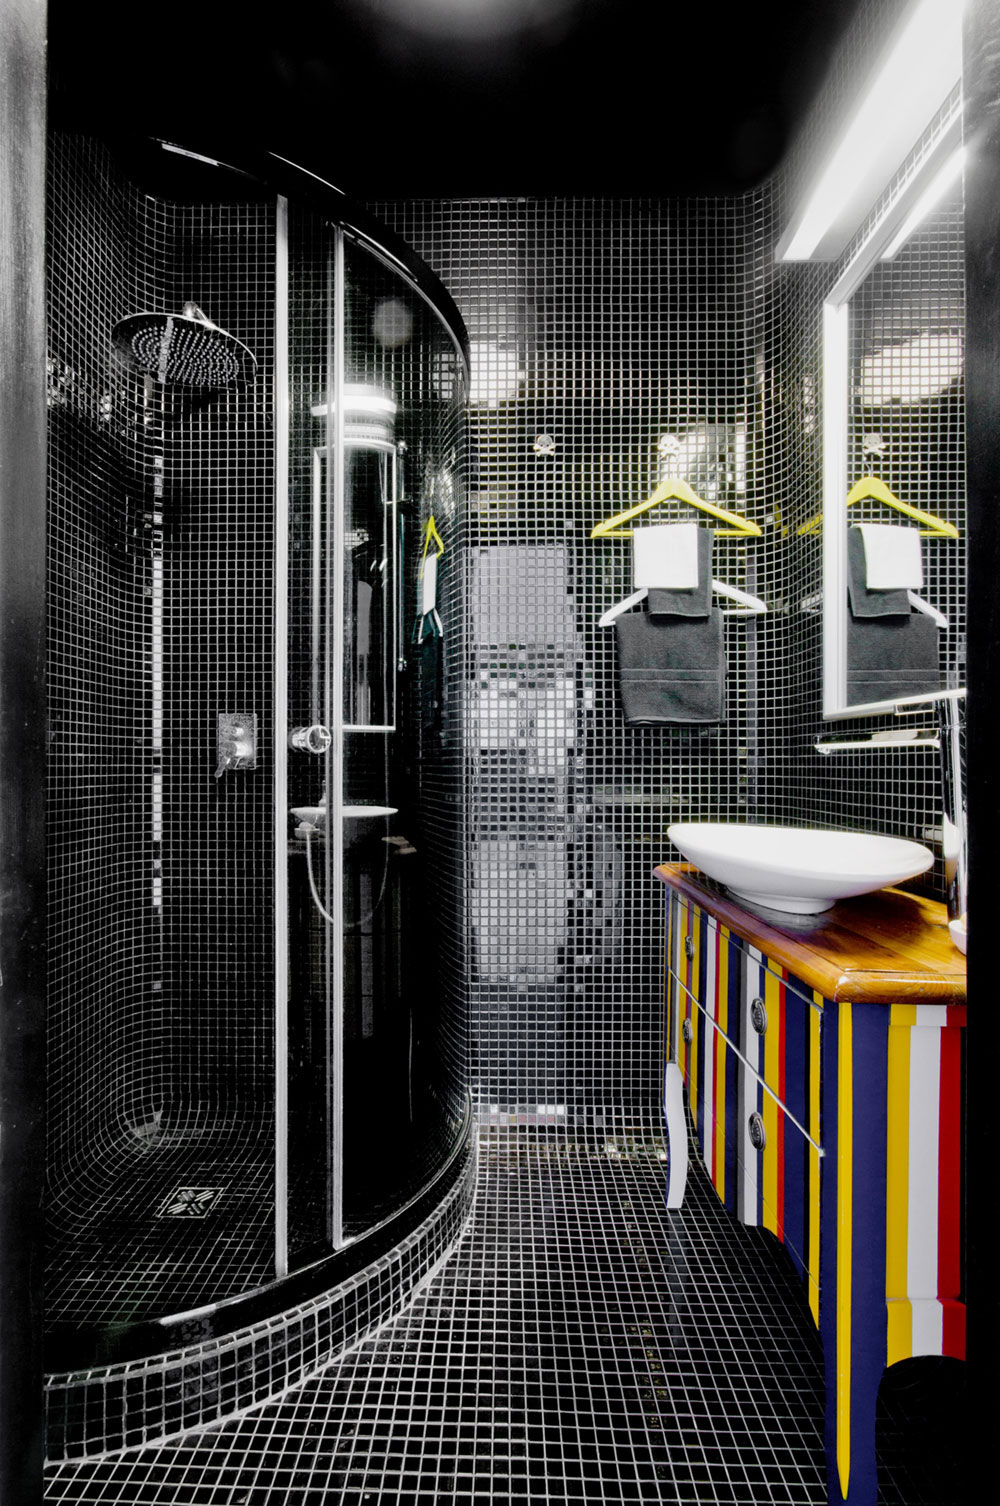 Classic-bathroom-interior-design-examples-that-stand-out-17 Classic-bathroom-interior-design-examples that stand out